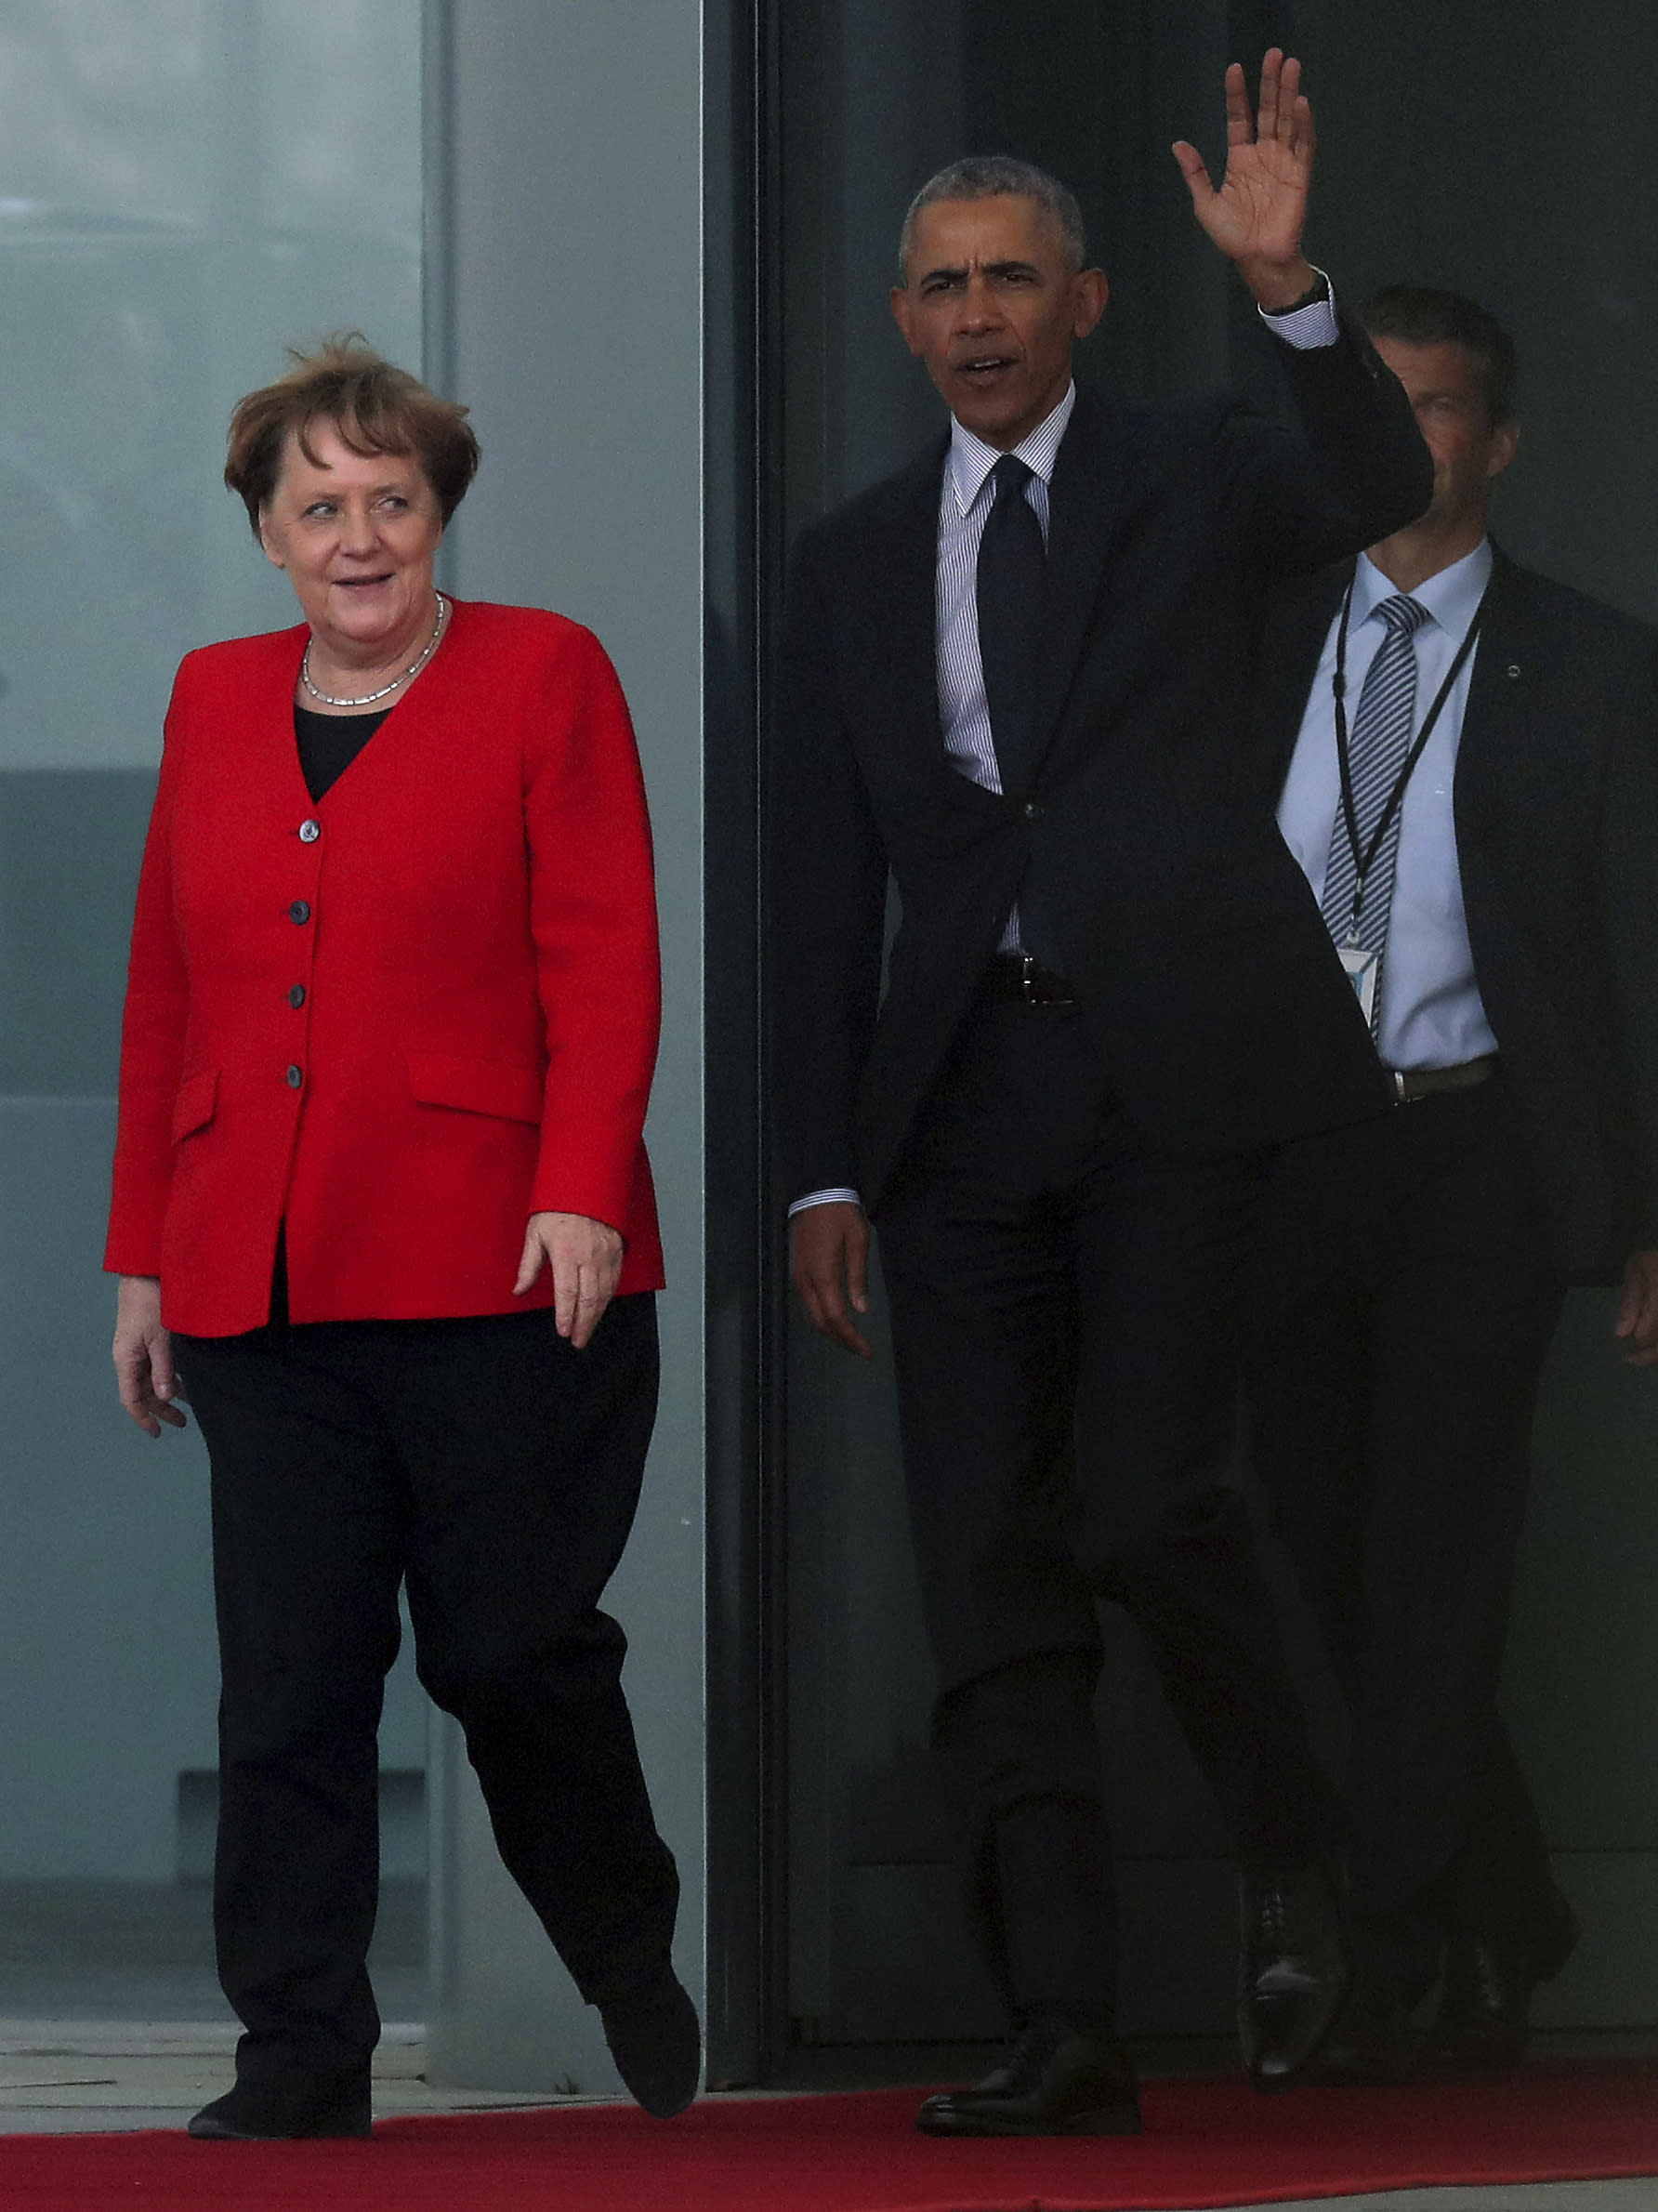 Former US President Barack Obama, right, waves as he and German Chancellor Angela Merkel, left, leave the Chancellery after a meeting in Berlin, Germany, Friday, April 5, 2019. (AP Photo/Michael Sohn)